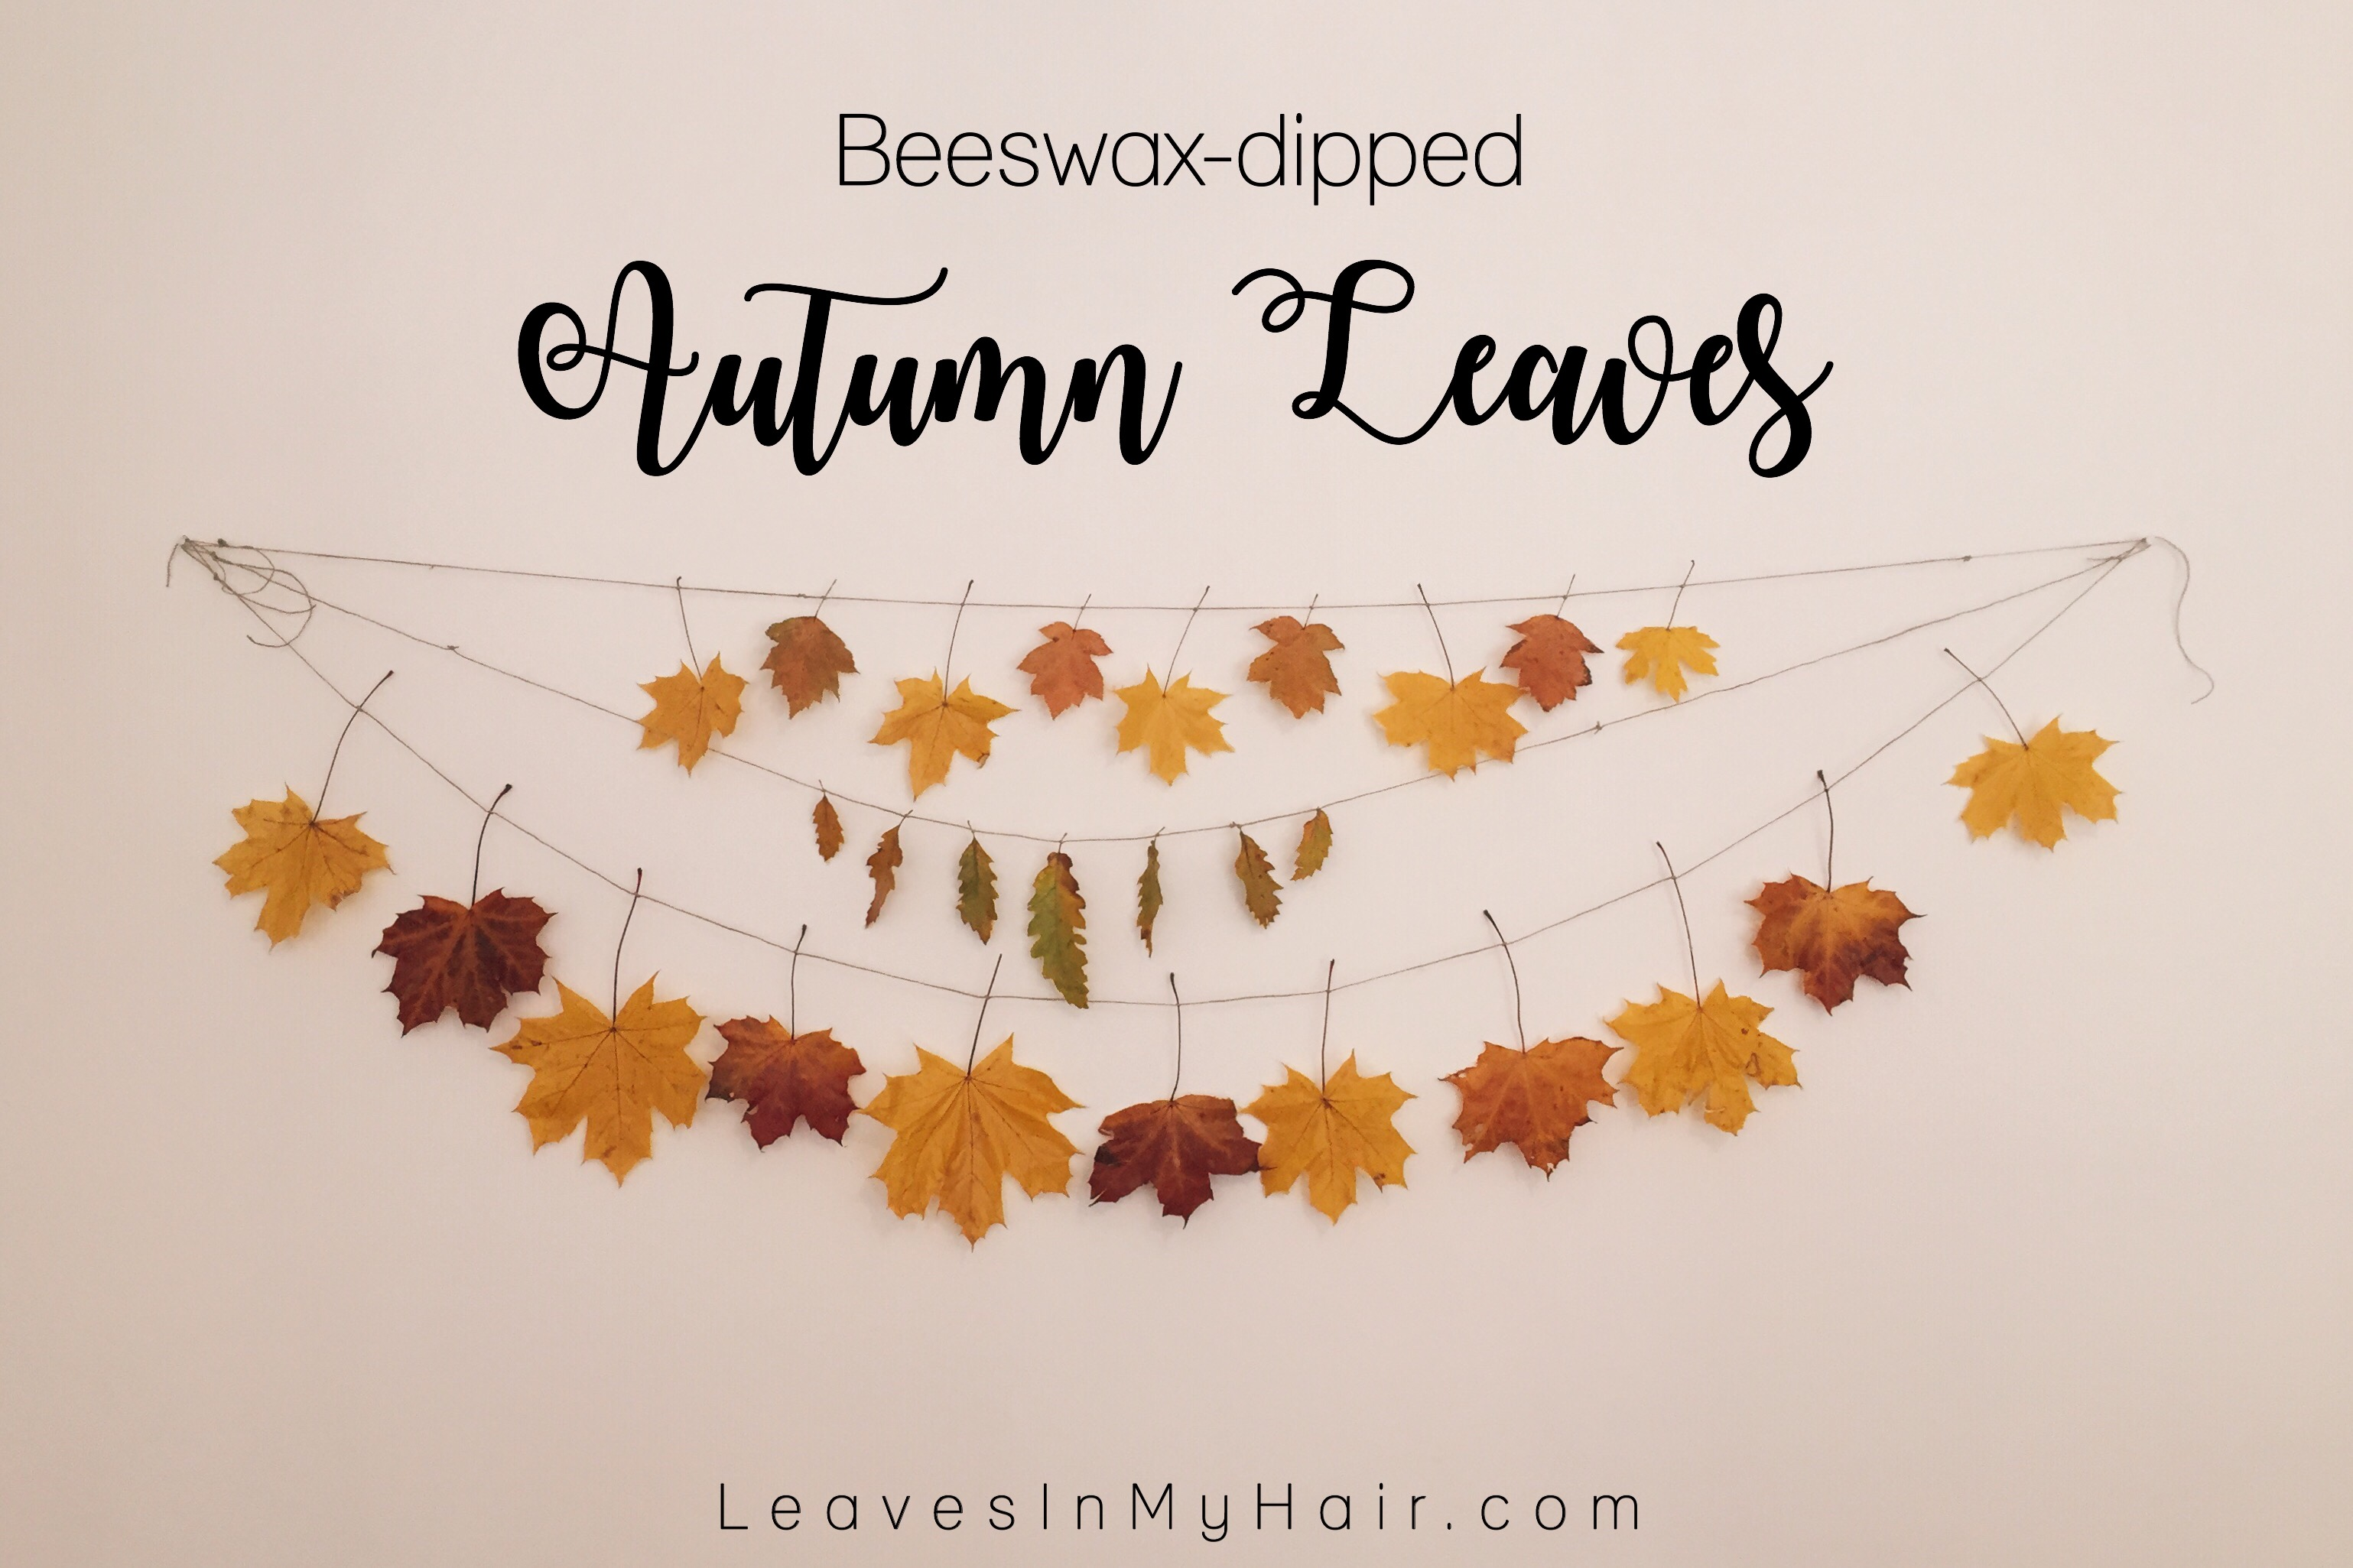 Beeswax-dipped Autumn Leaves